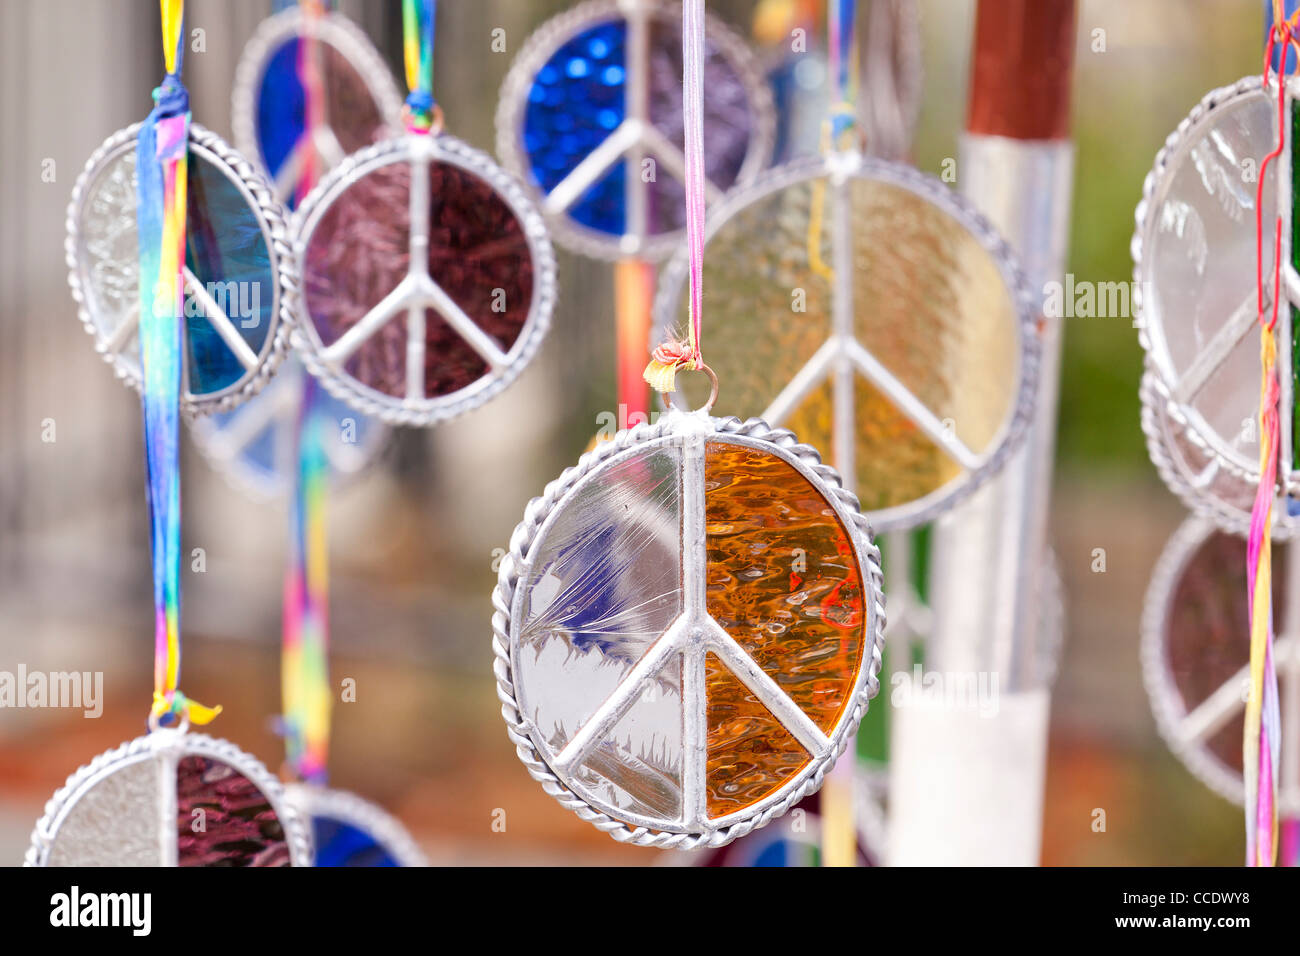 Stained glass peace medals - Stock Image